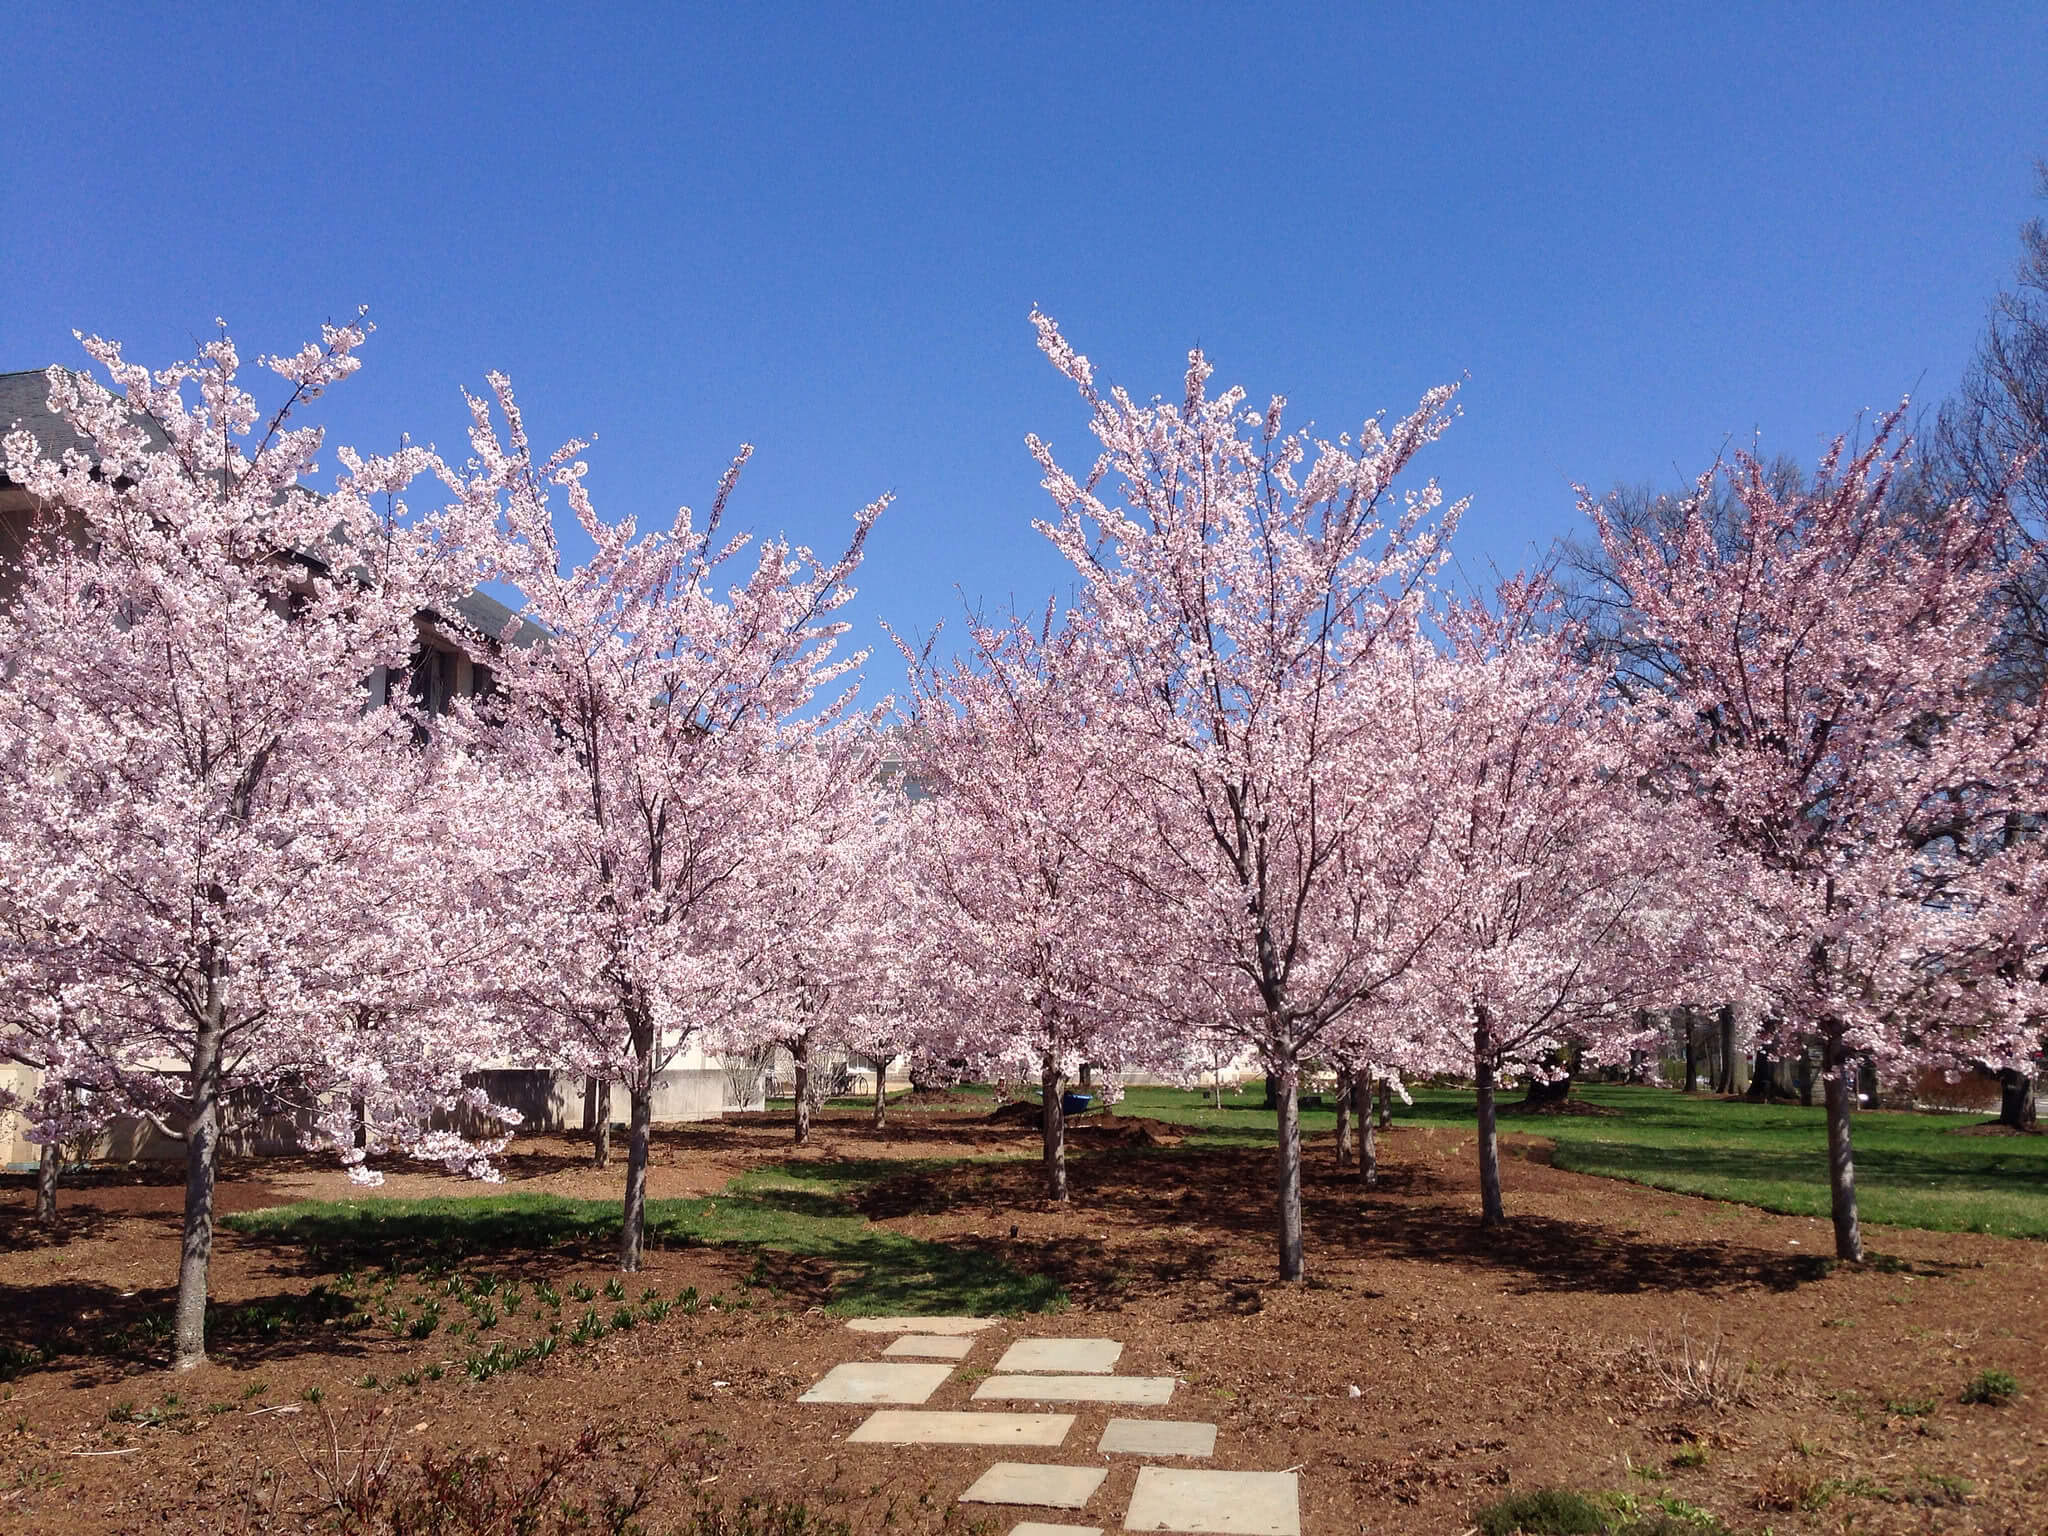 American University is the greenest college campus in the US.